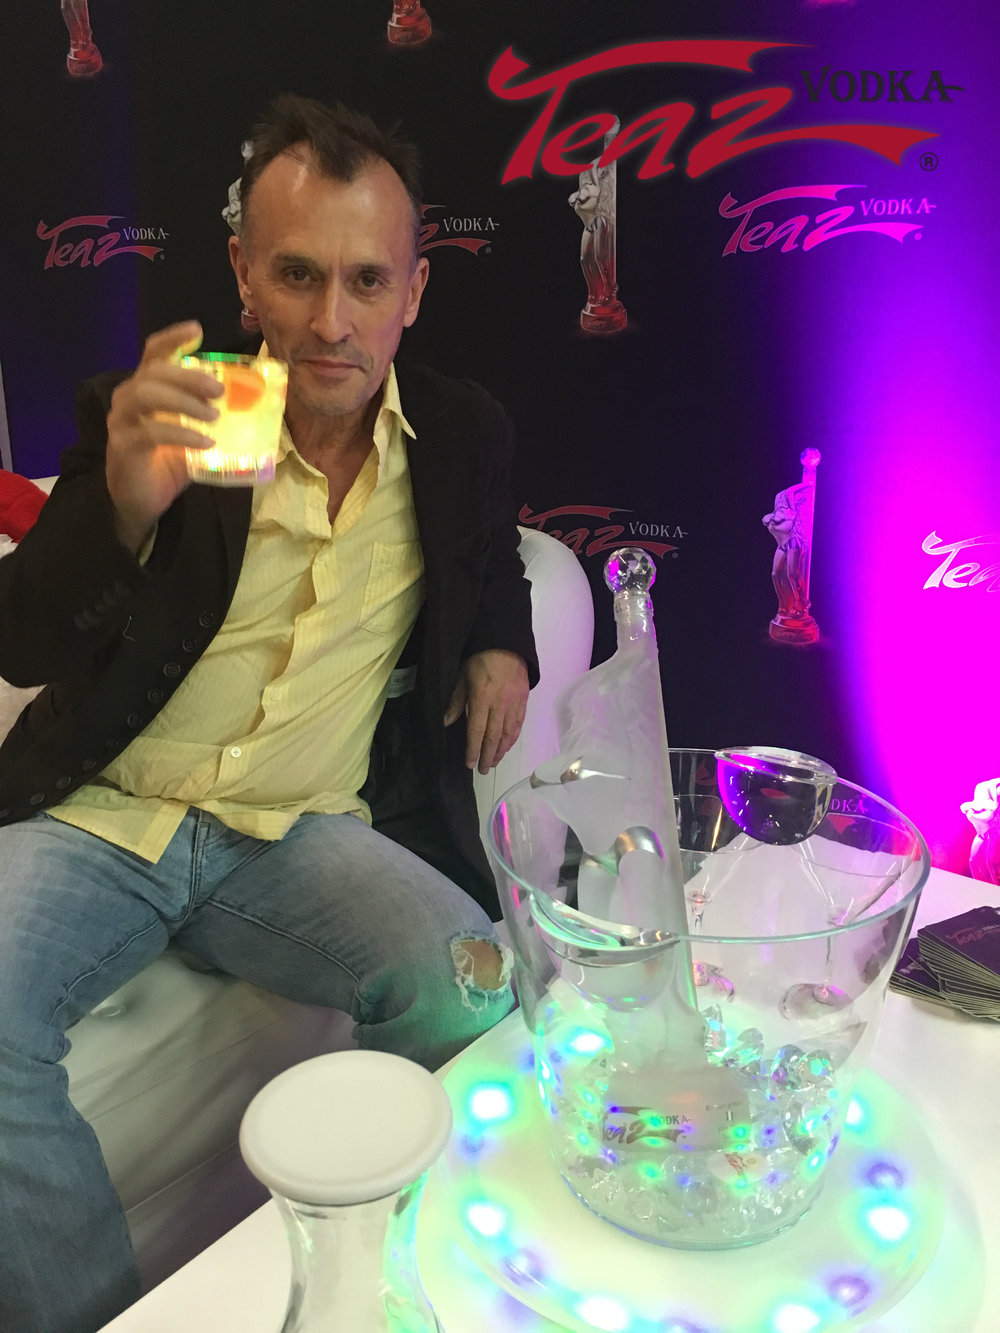 Robert Knepper - Teaz Vodka.jpg